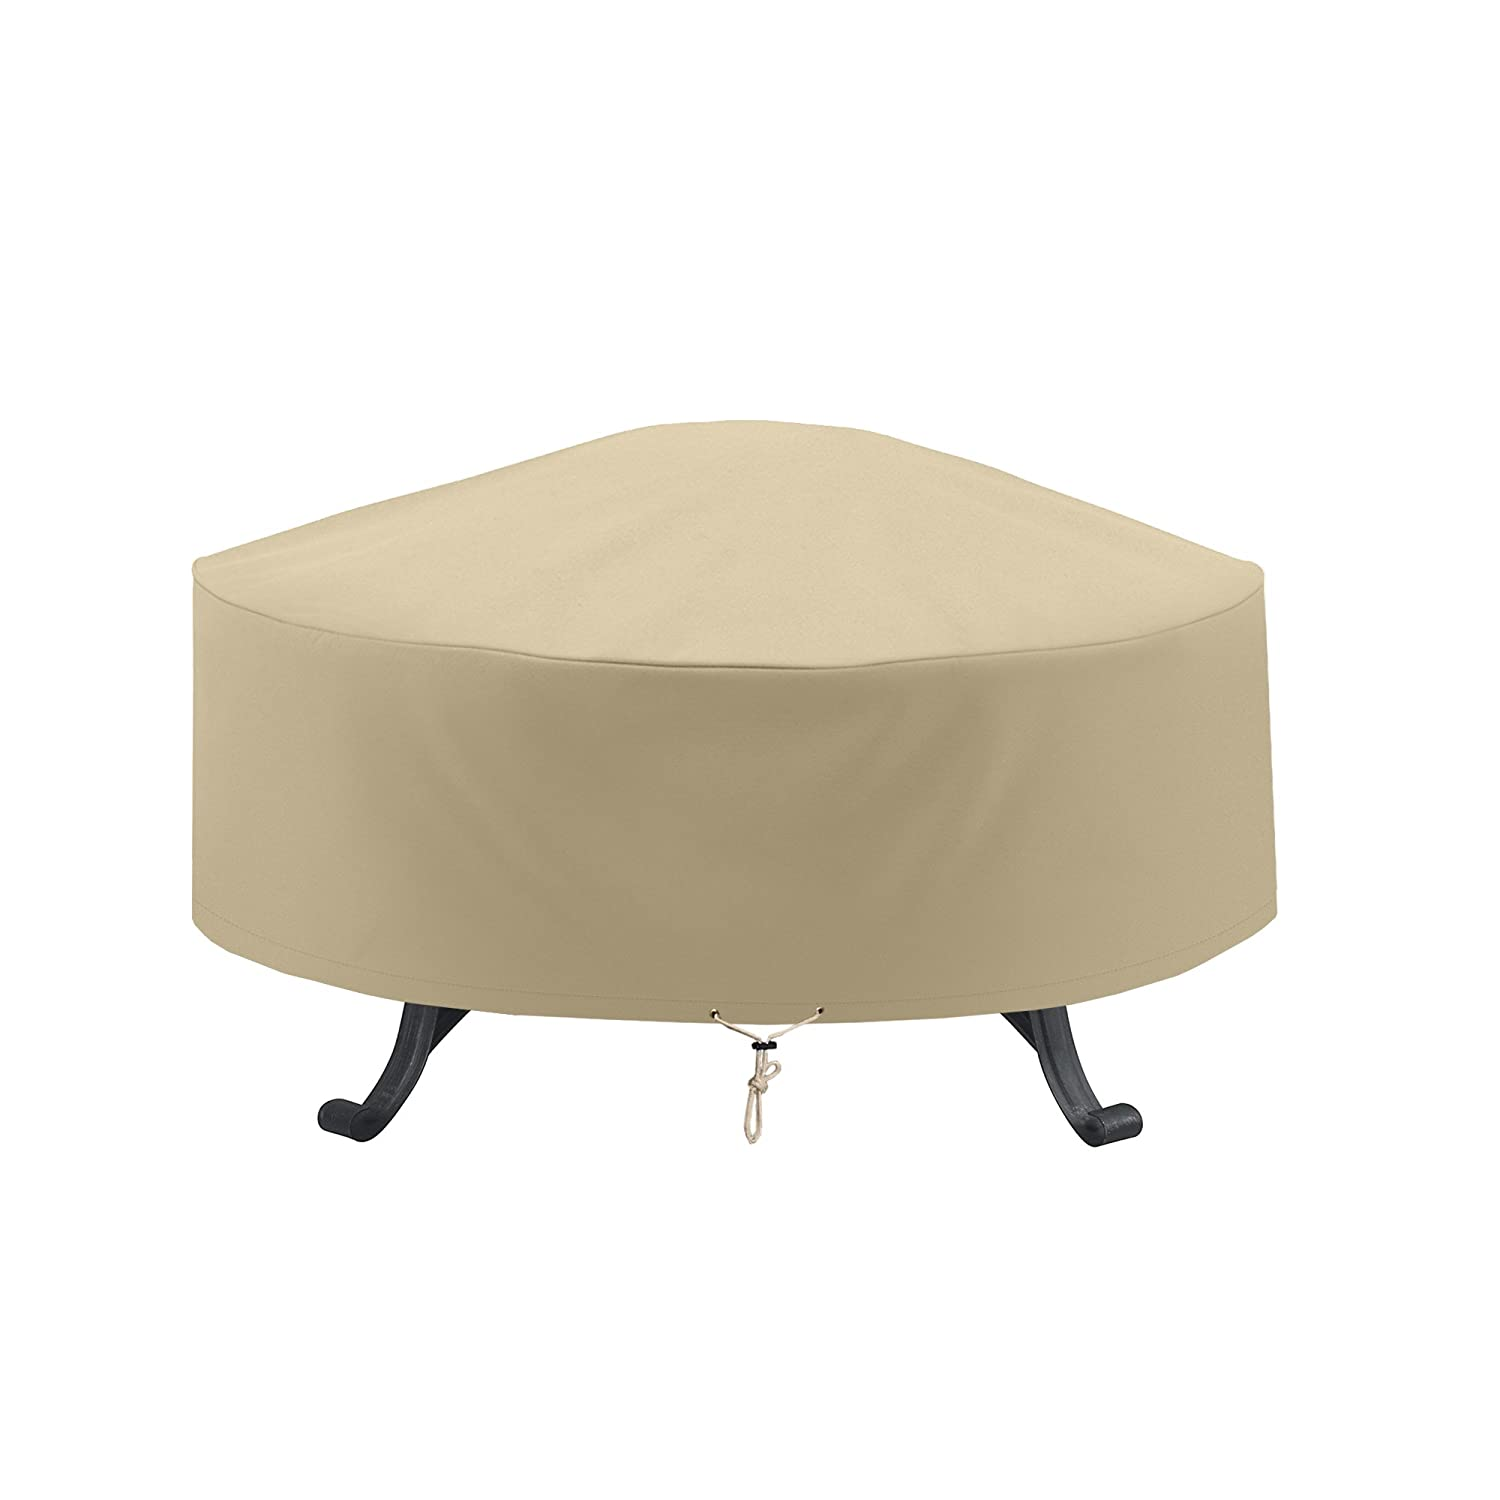 SunPatio Outdoor Fire Pit Cover, 32 Dia x 14 H, Patio Round Ottoman Cover, Waterproof Table Cover, Heavy Duty Veranda Furniture Cover, All Weather Protection, Beige 32 Dia x 14 H SD20021